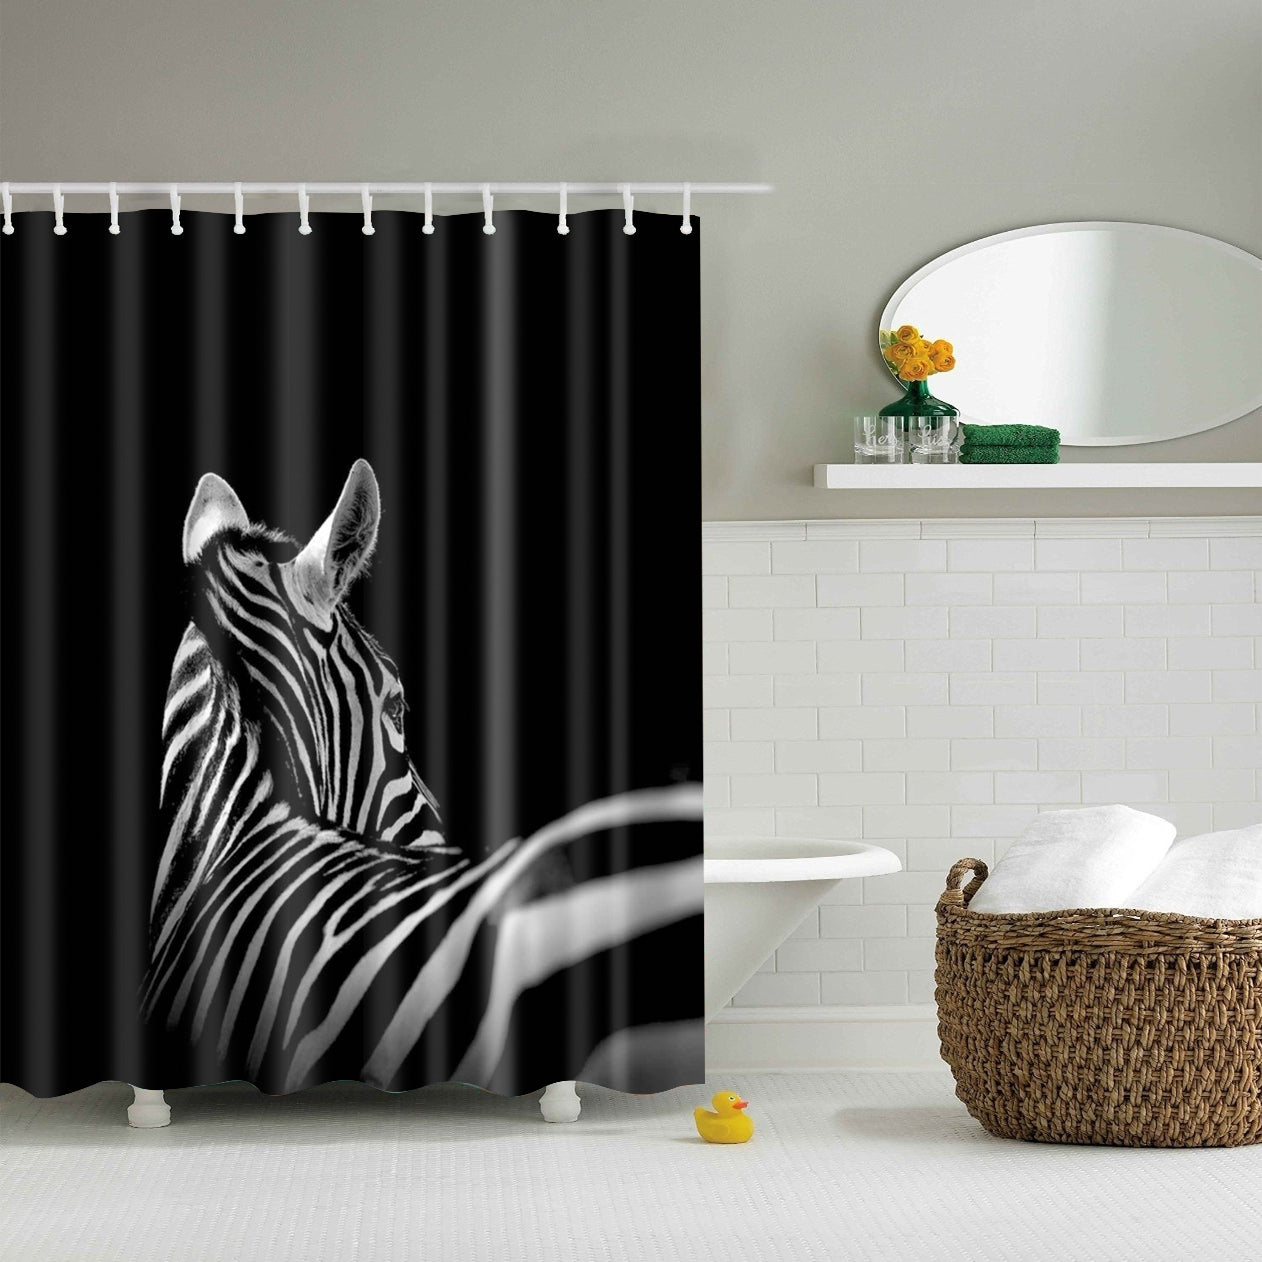 Breathtaking Black and White Zebra Portraits Shower Curtain | GoJeek